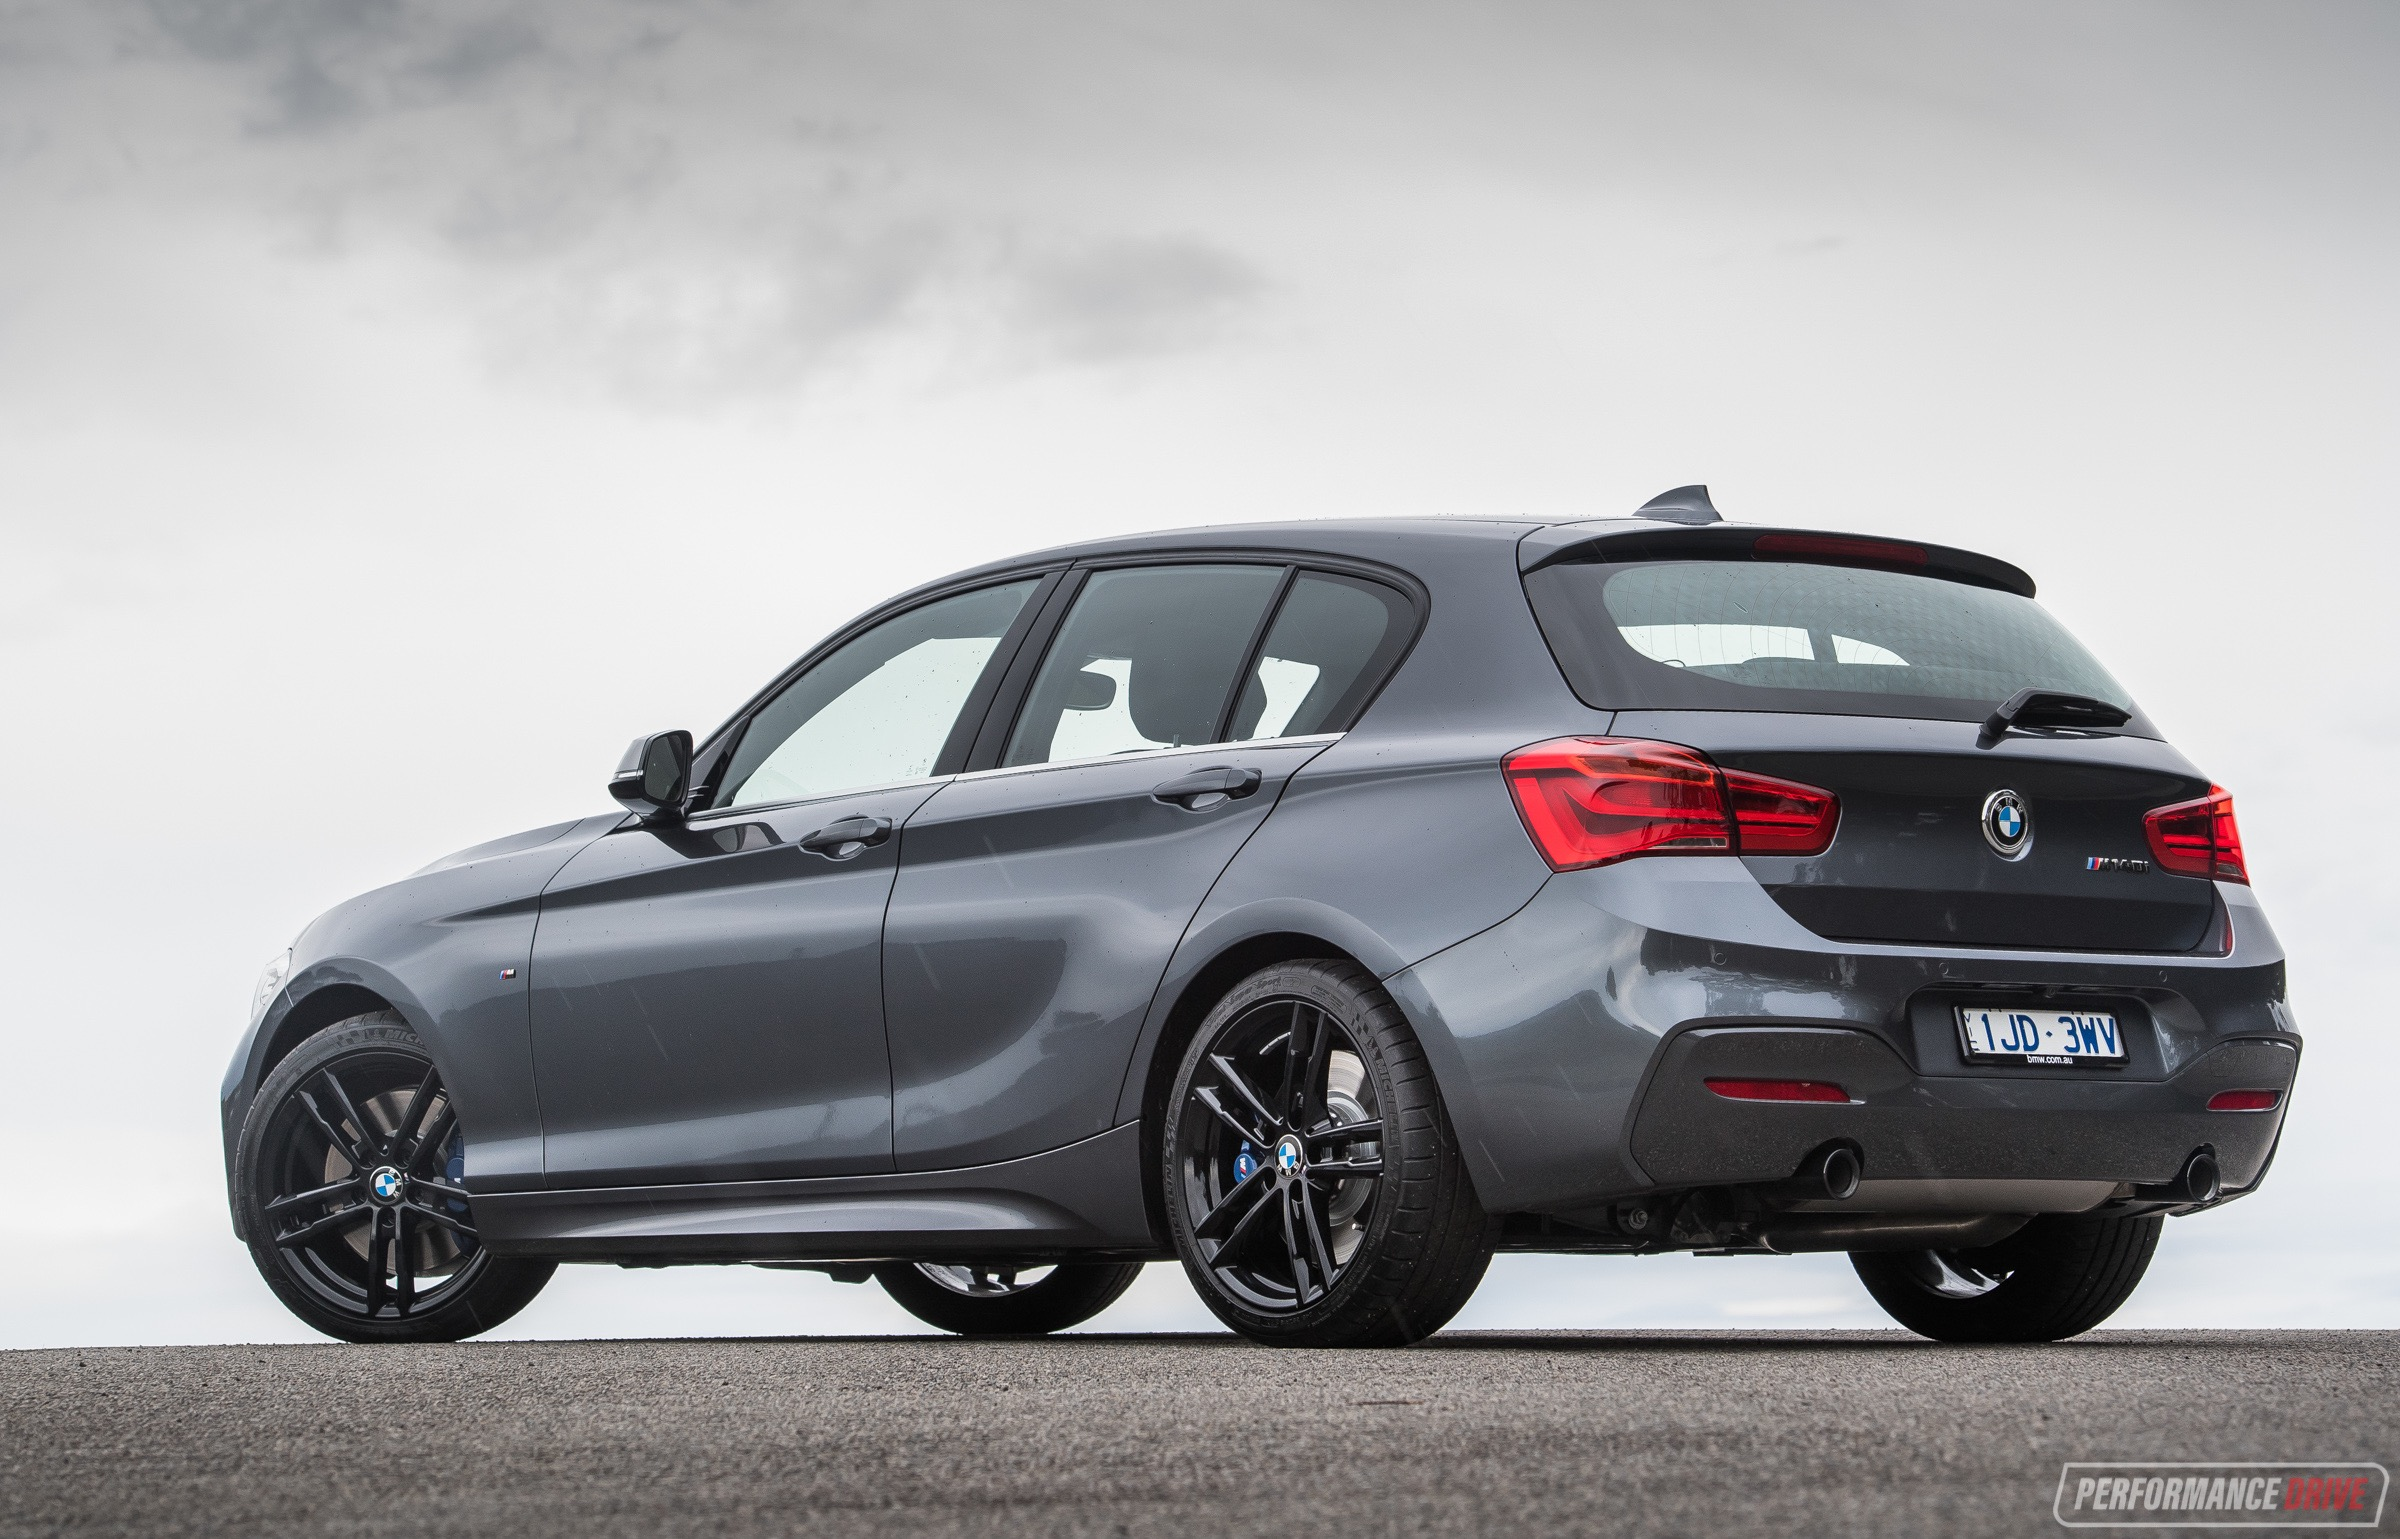 2018 bmw m140i review australian launch performancedrive. Black Bedroom Furniture Sets. Home Design Ideas